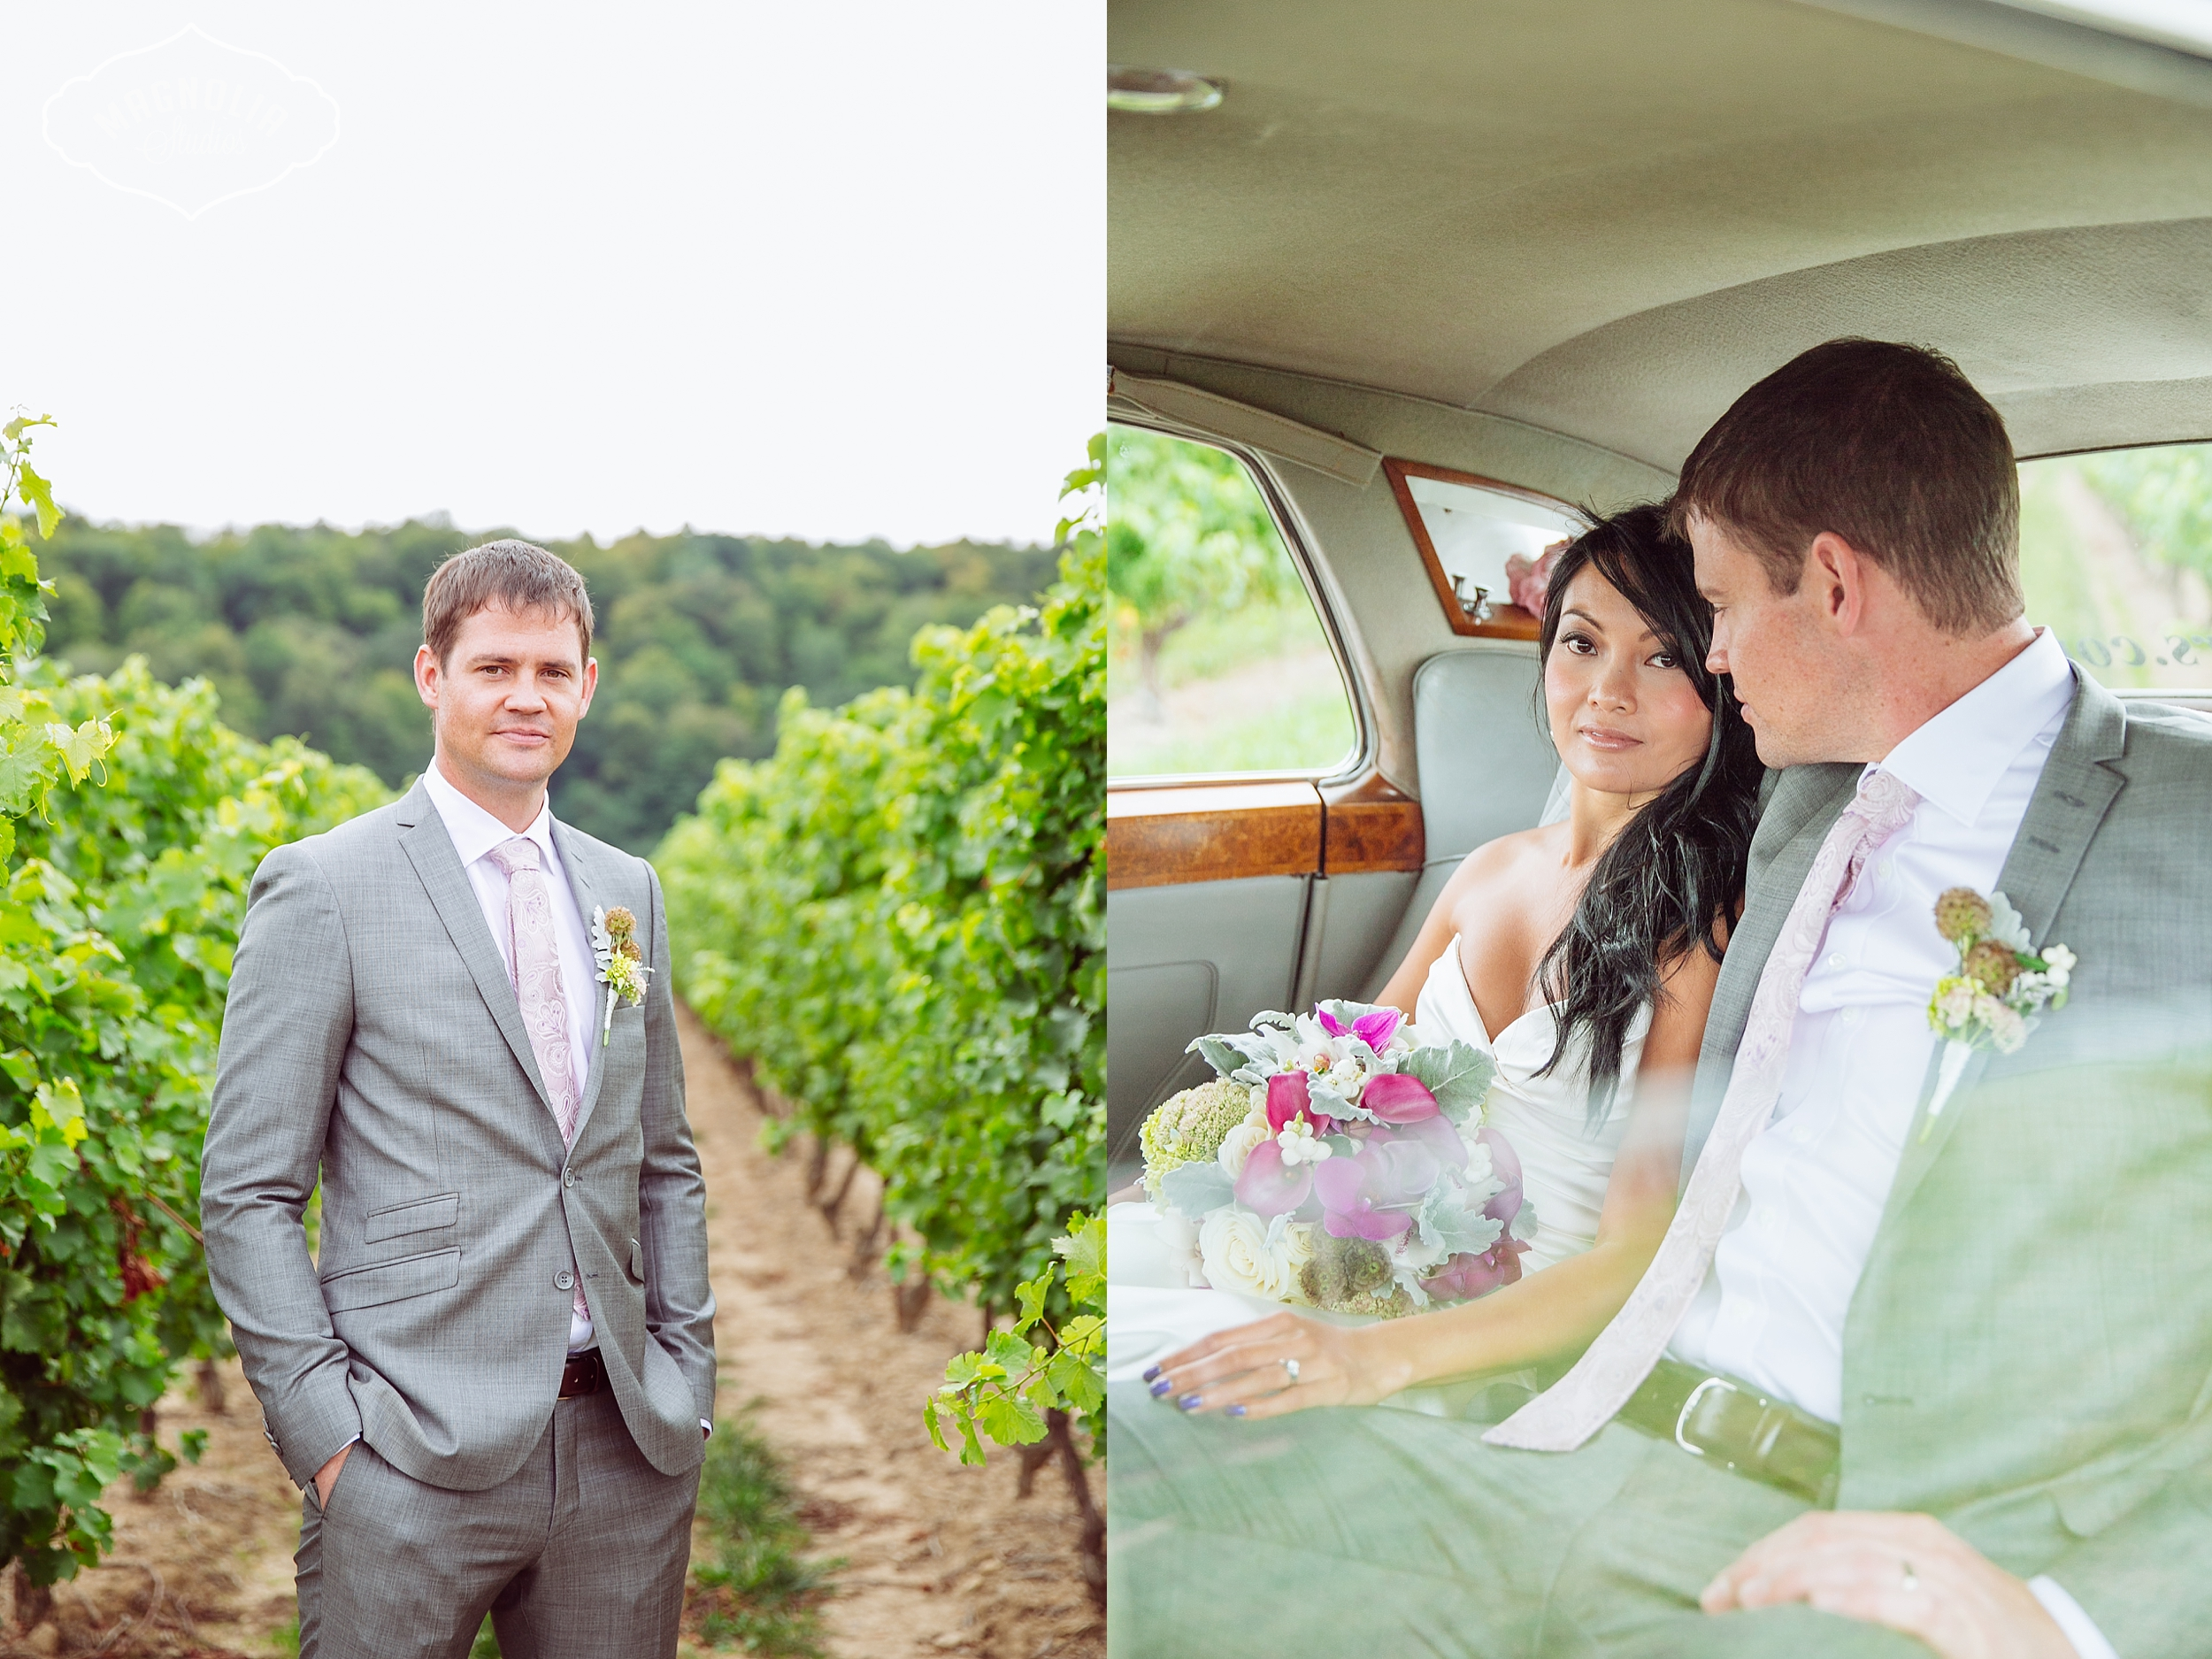 Cavesprings_Winery_Wedding_NOTL-0021